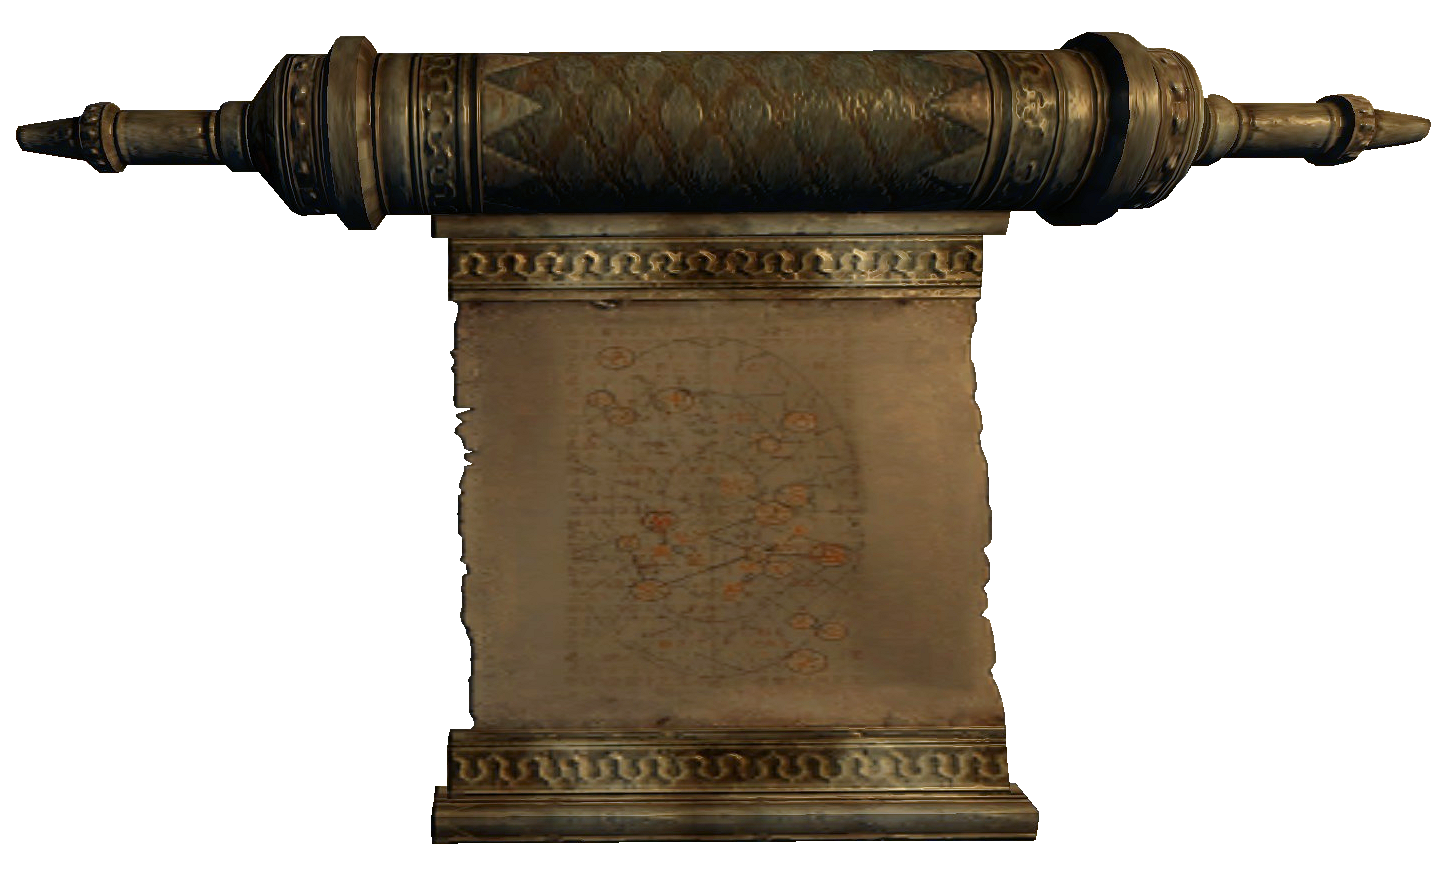 Elder Scroll (Oblivion) Scroll.png - The Elder Scrolls PNG